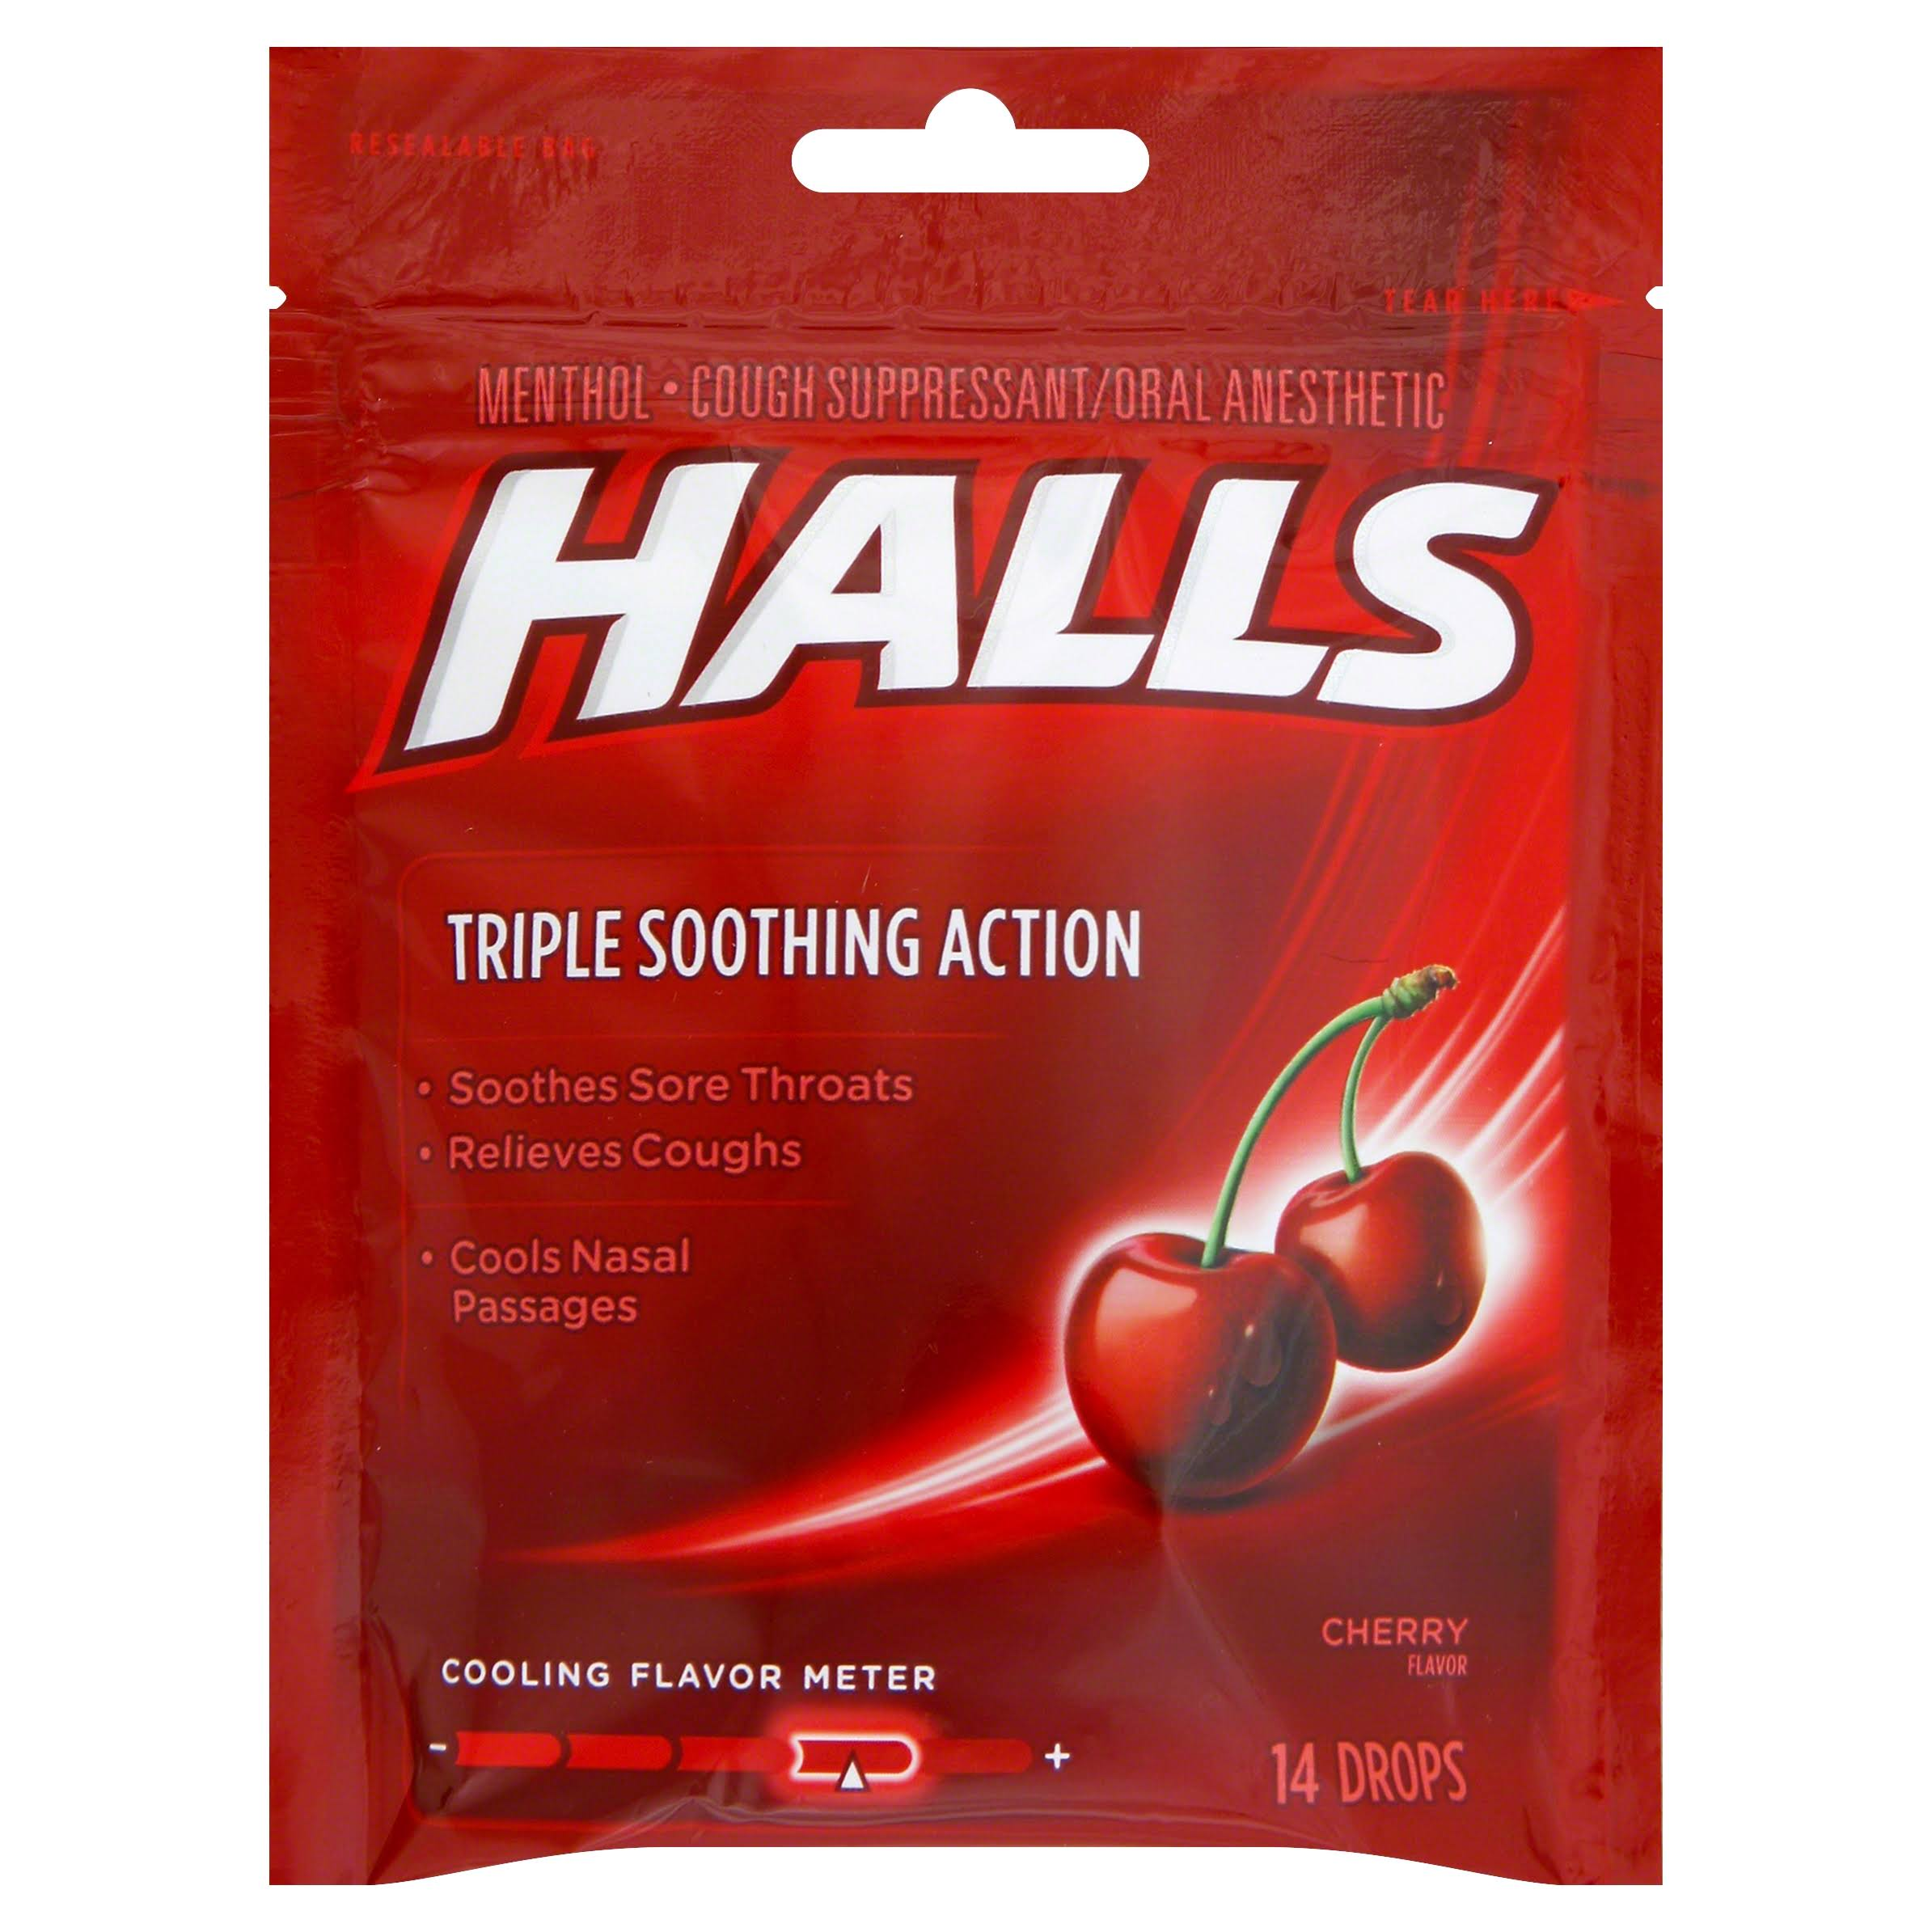 Halls Couth Suppressant/Oral Anesthetic, Cherry Flavor - 14 drops